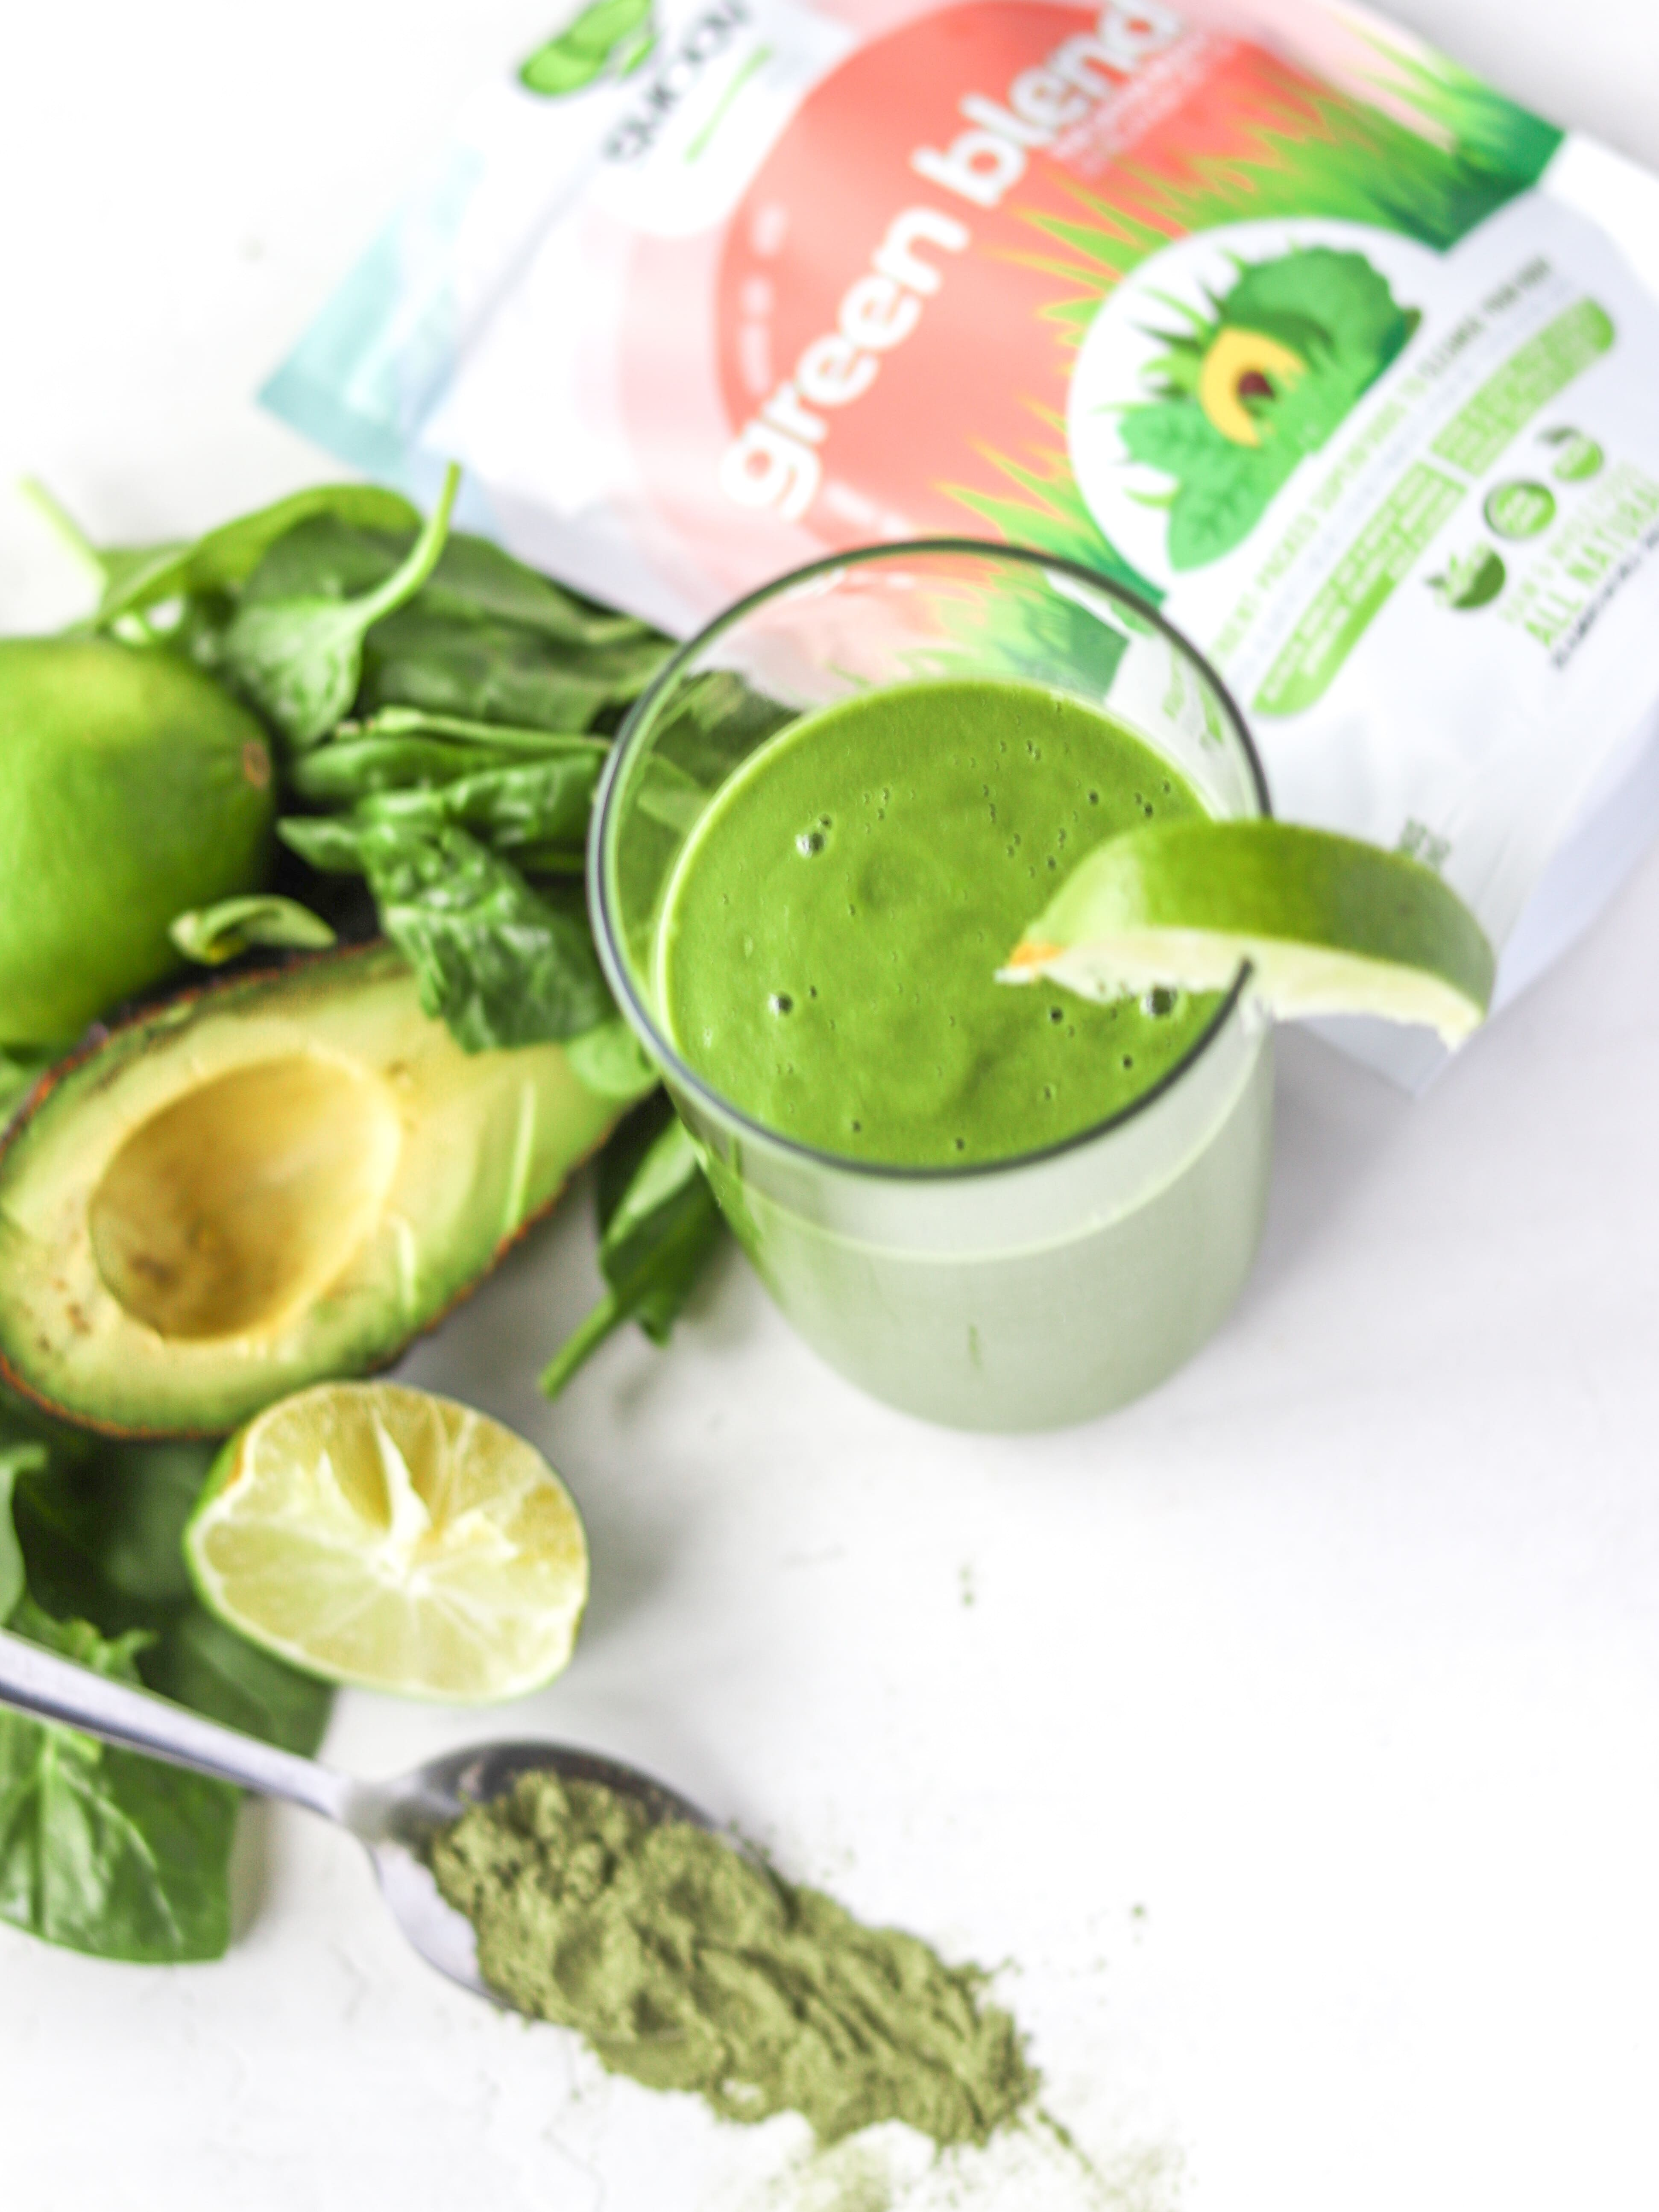 SMOOV green blend has 9 powerful superfoods with no added sugar, caffeine or additives. The easiest all-natural way to get your greens and nutrition